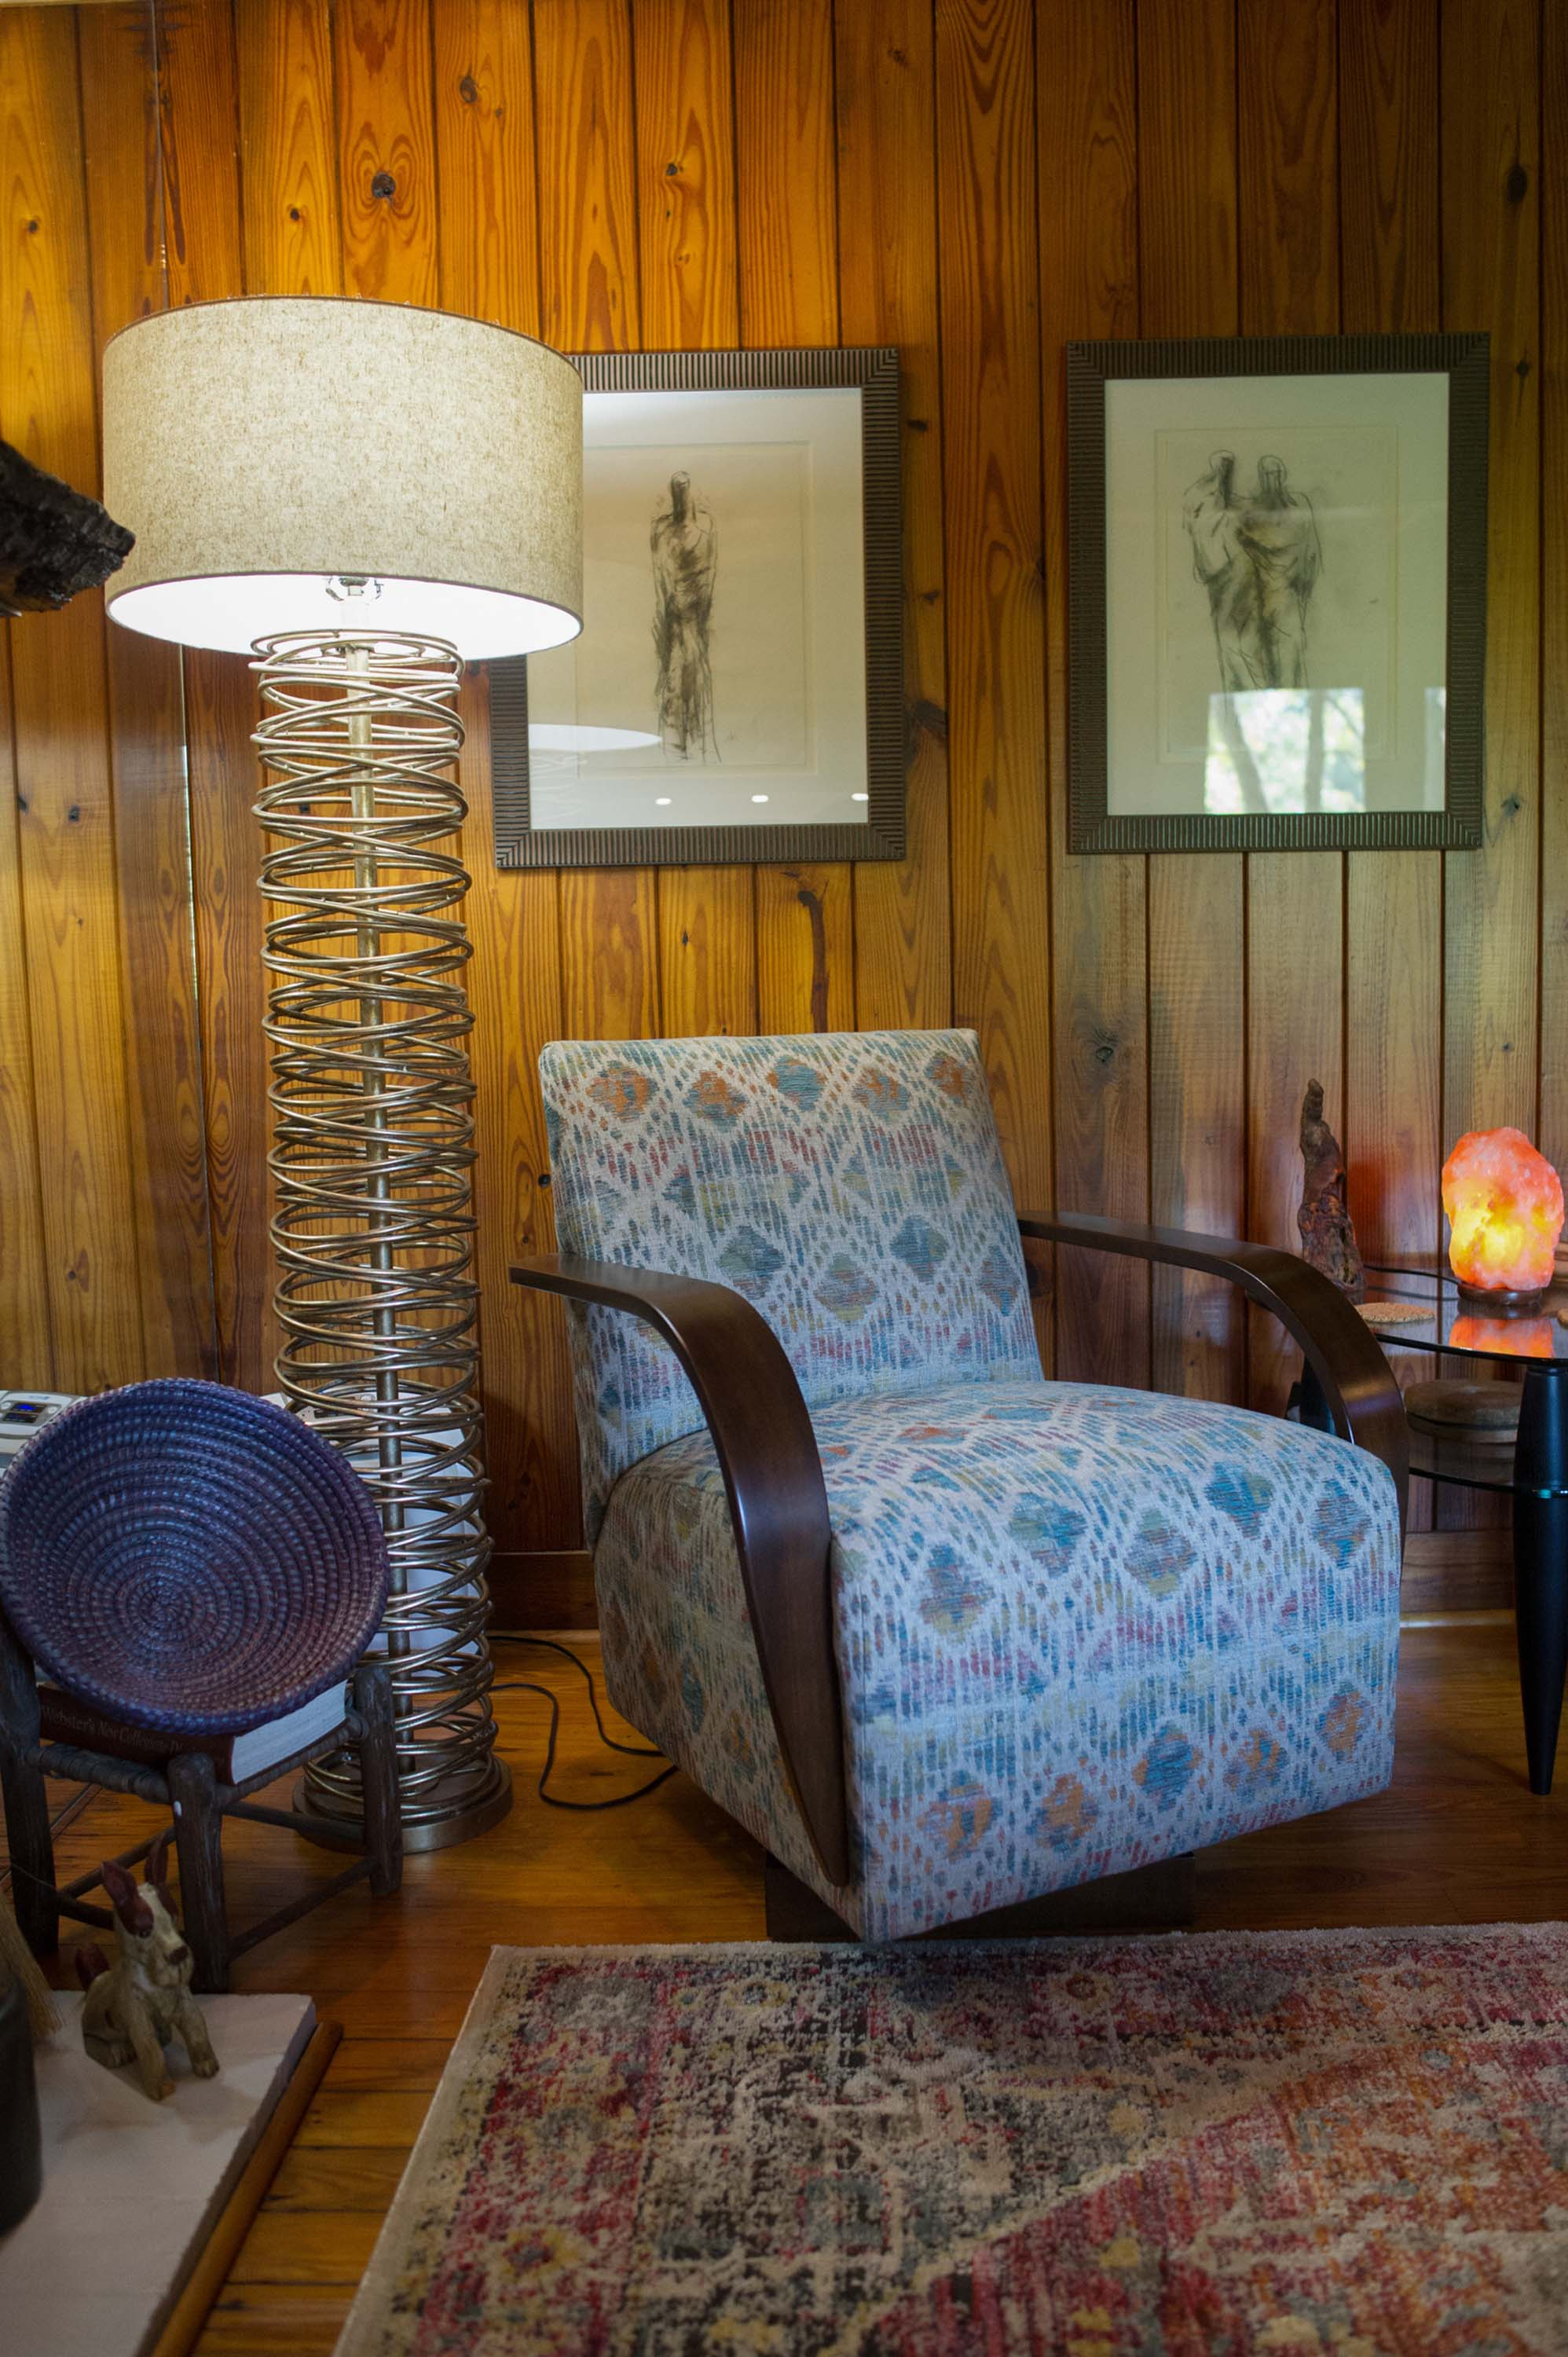 Swivel Chair with Floor Lamp, 2 pieces of artwork & large area rug.